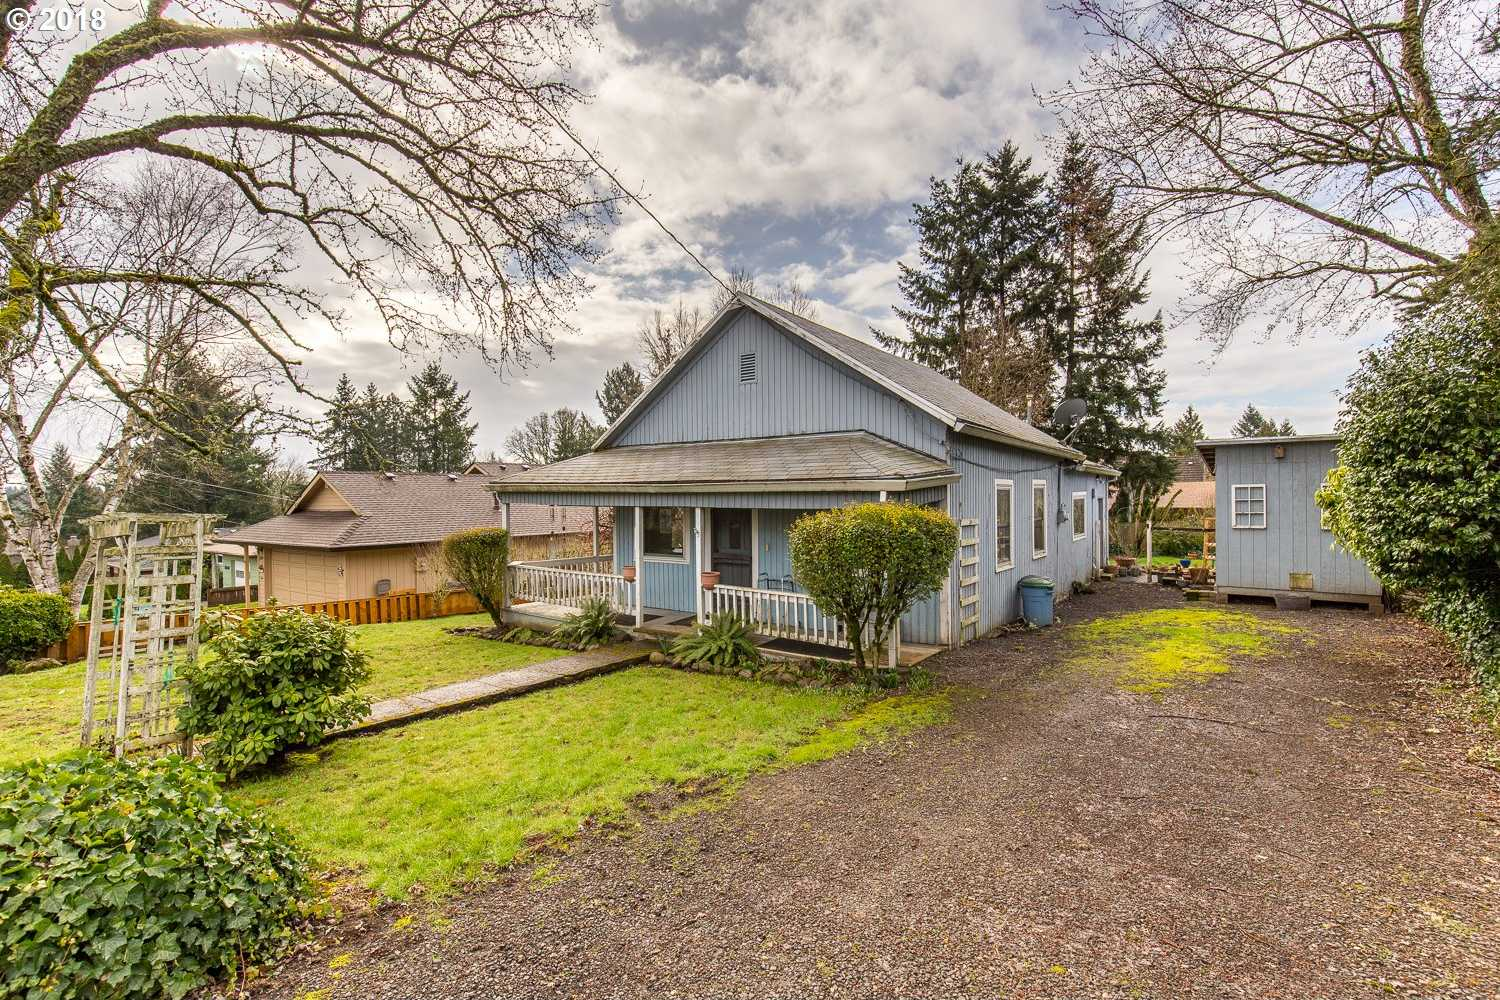 $285,000 - 2Br/1Ba -  for Sale in West Linn